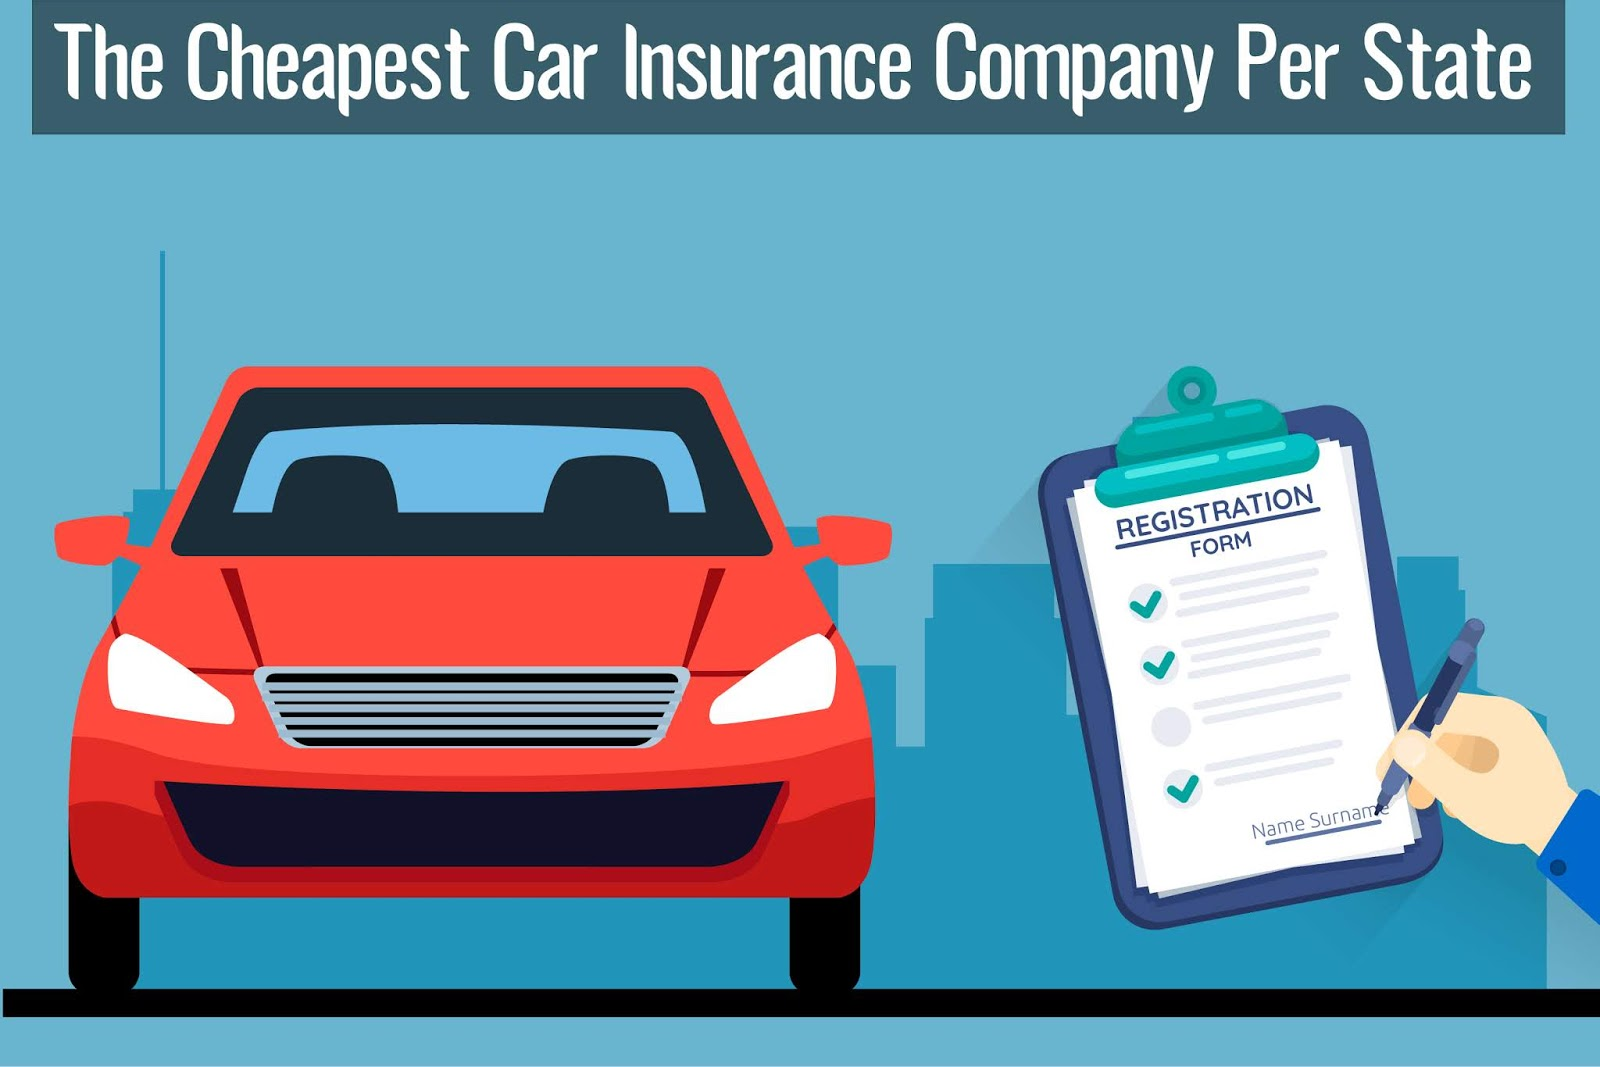 cheapest for car insurance - cheapest car insurance - cheapest car insurance quotes - cheapest car insurance near me - cheapest car insurance Florida - cheapest car insurance texas - cheapest car insurance in texas